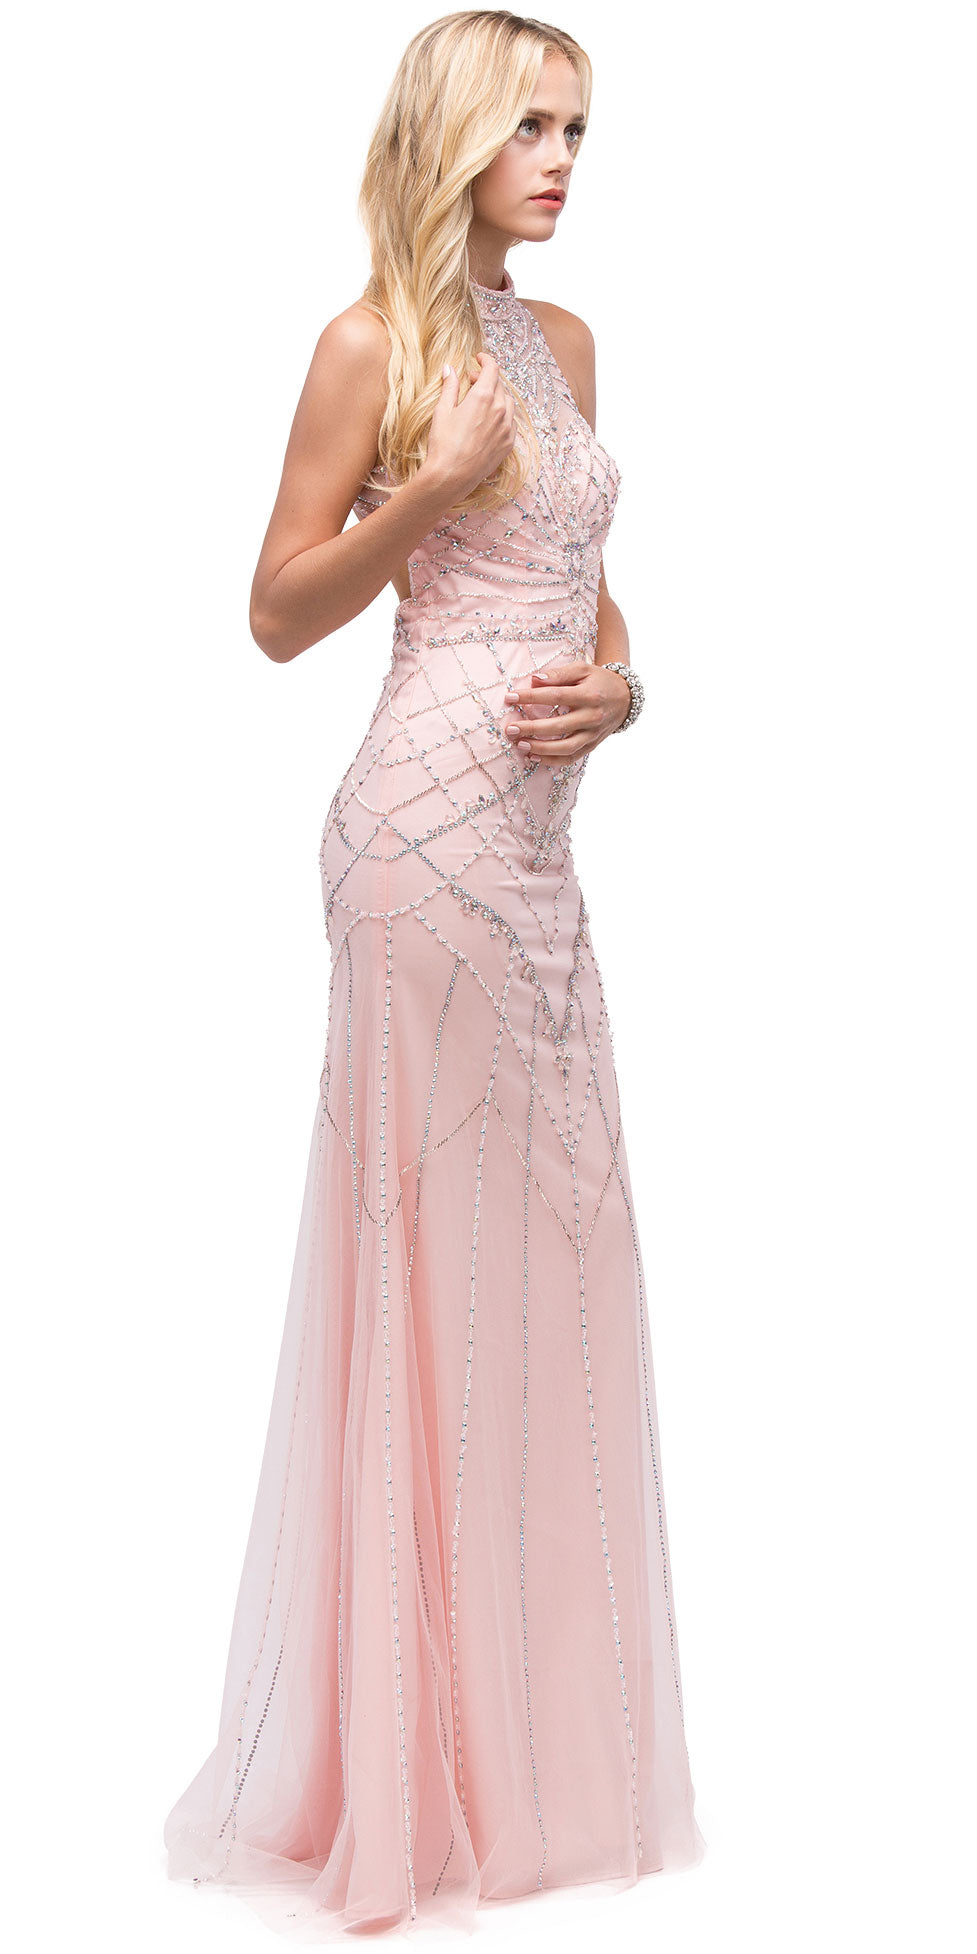 Image of Glamorous Halter Open Back Beaded Prom Dress in an alternative image